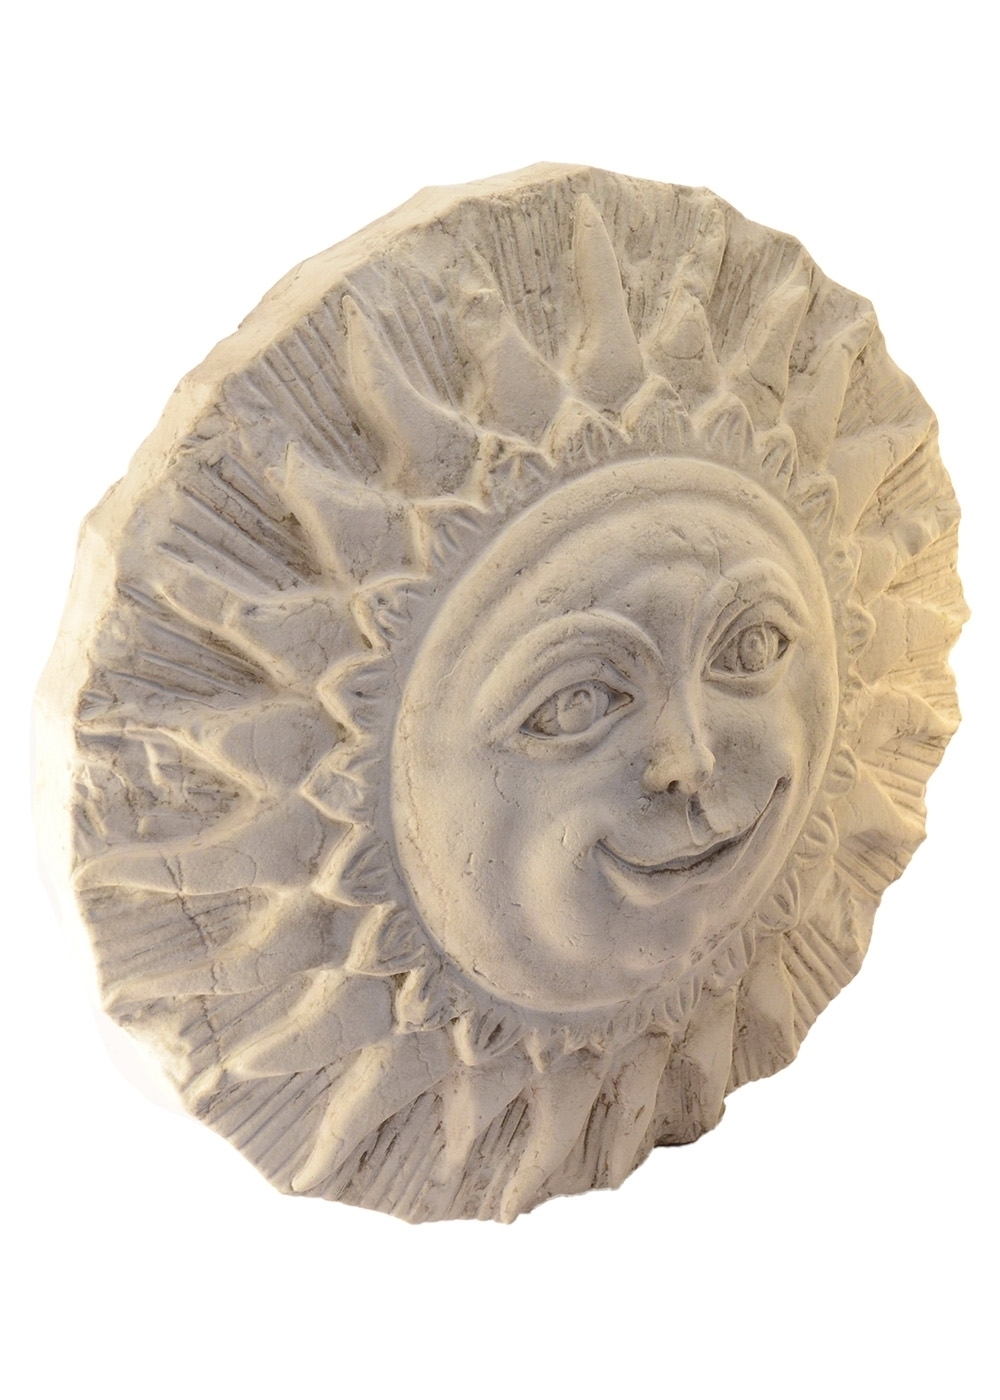 Buy Marble Grotesque Mask Ornamental 17457756 | Italy2Us.com